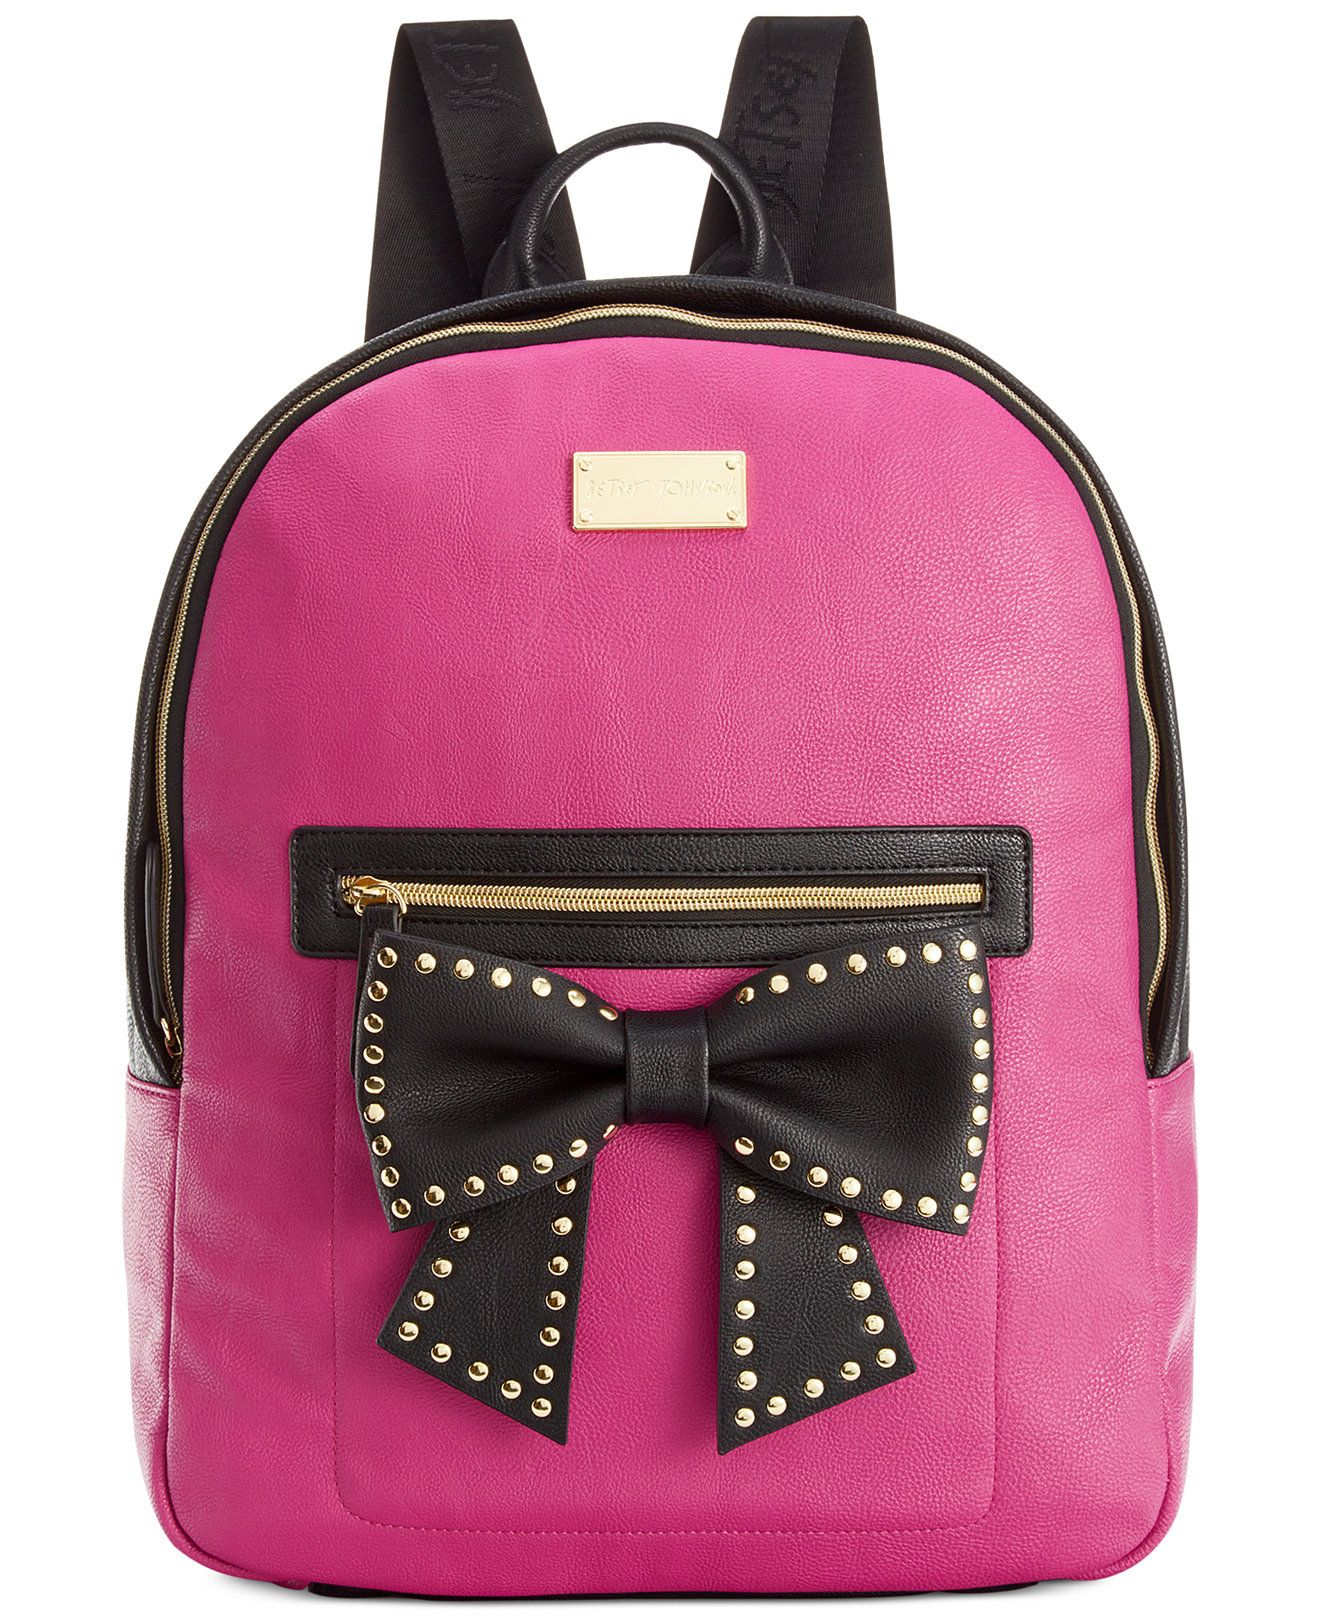 Betsey Johnson Macy s Exclusive Bow Backpack - Handbags   Accessories -  Macy s 501168b47b4a5